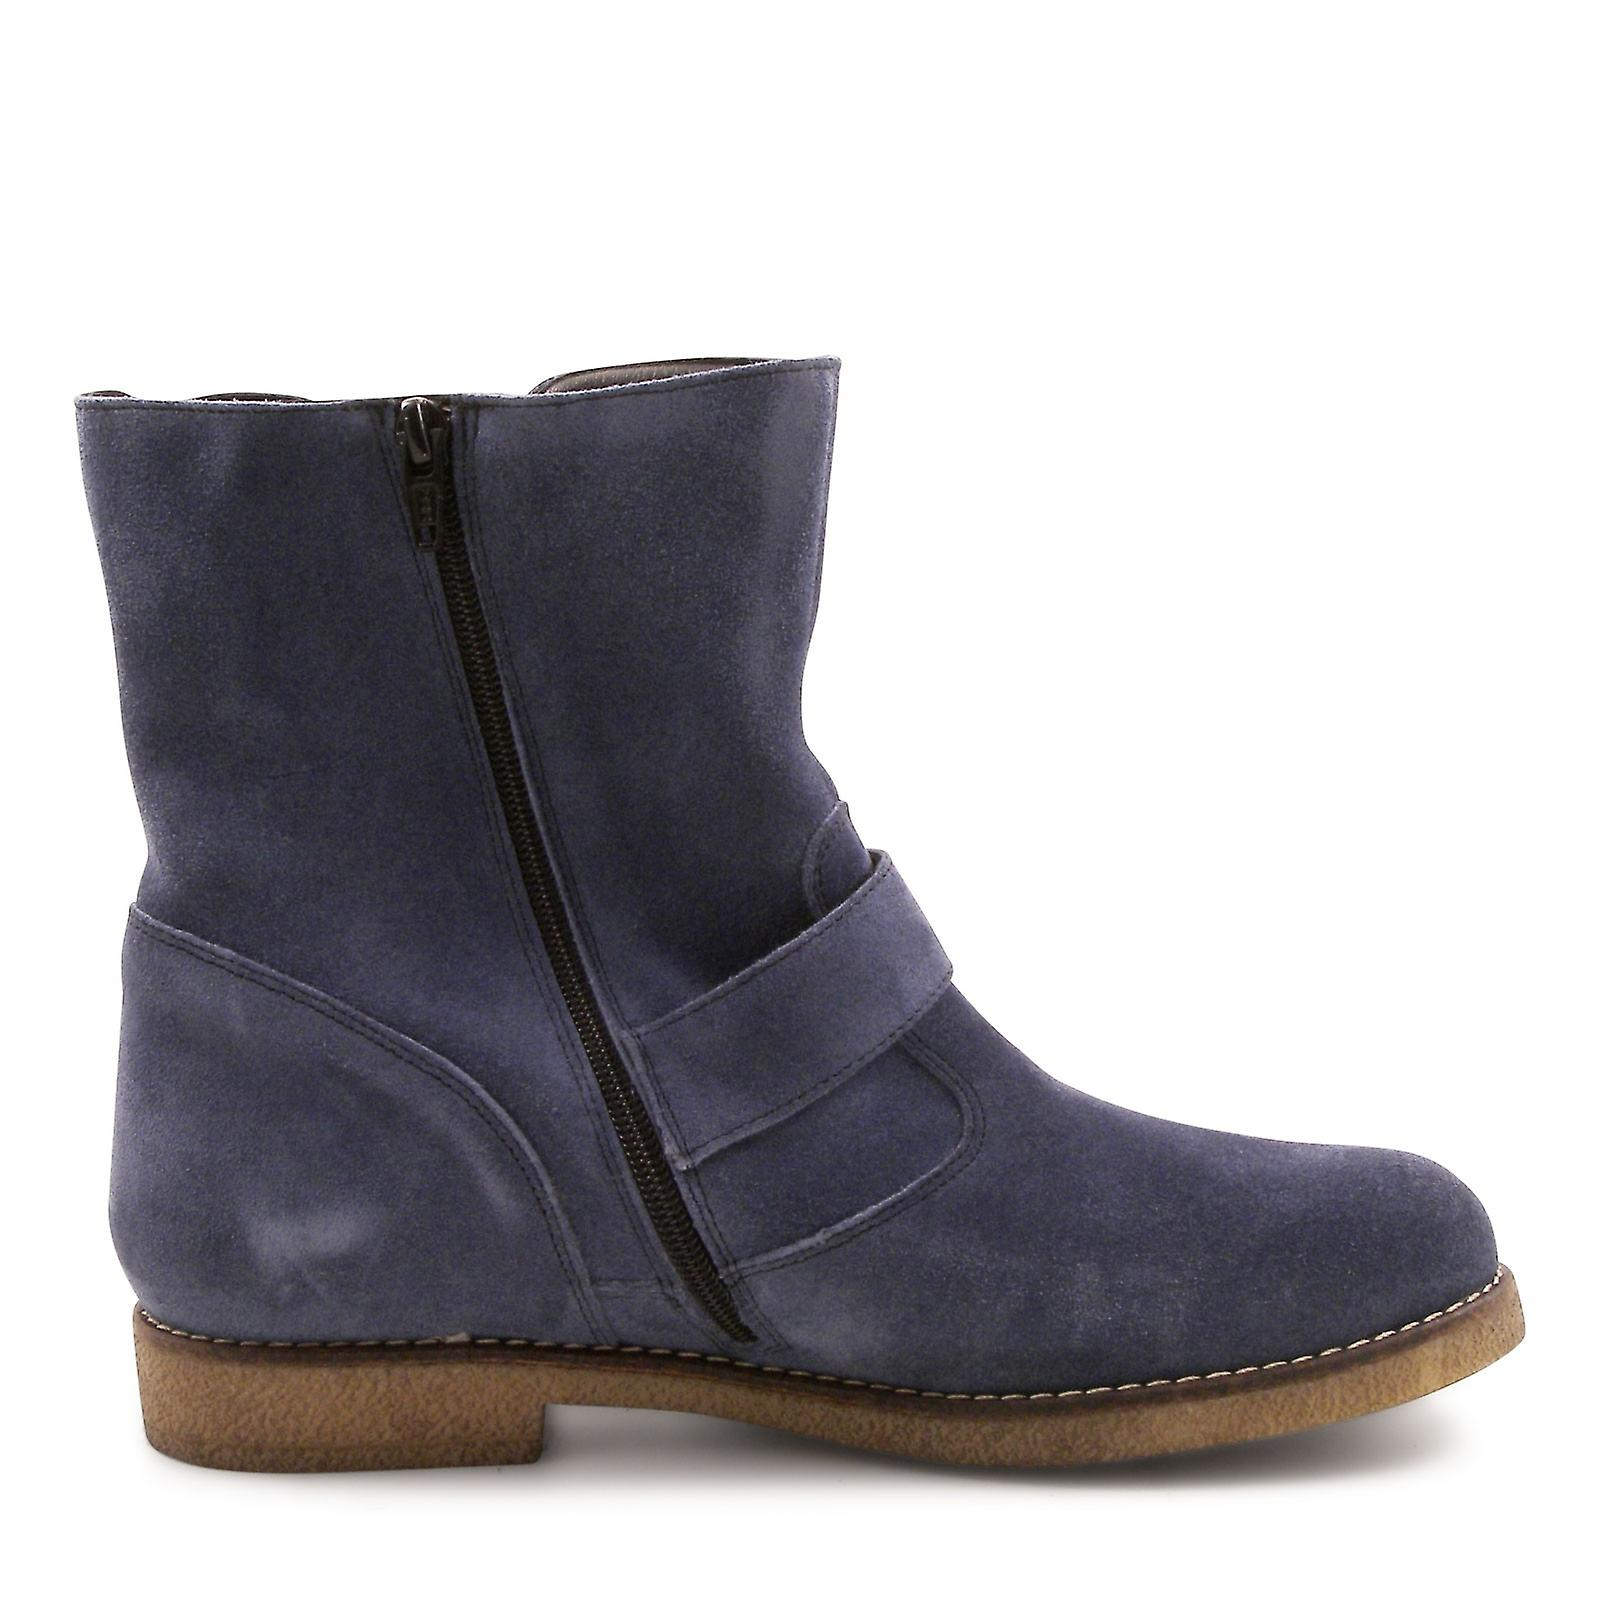 Women's italian suede leather low boots hand crafted